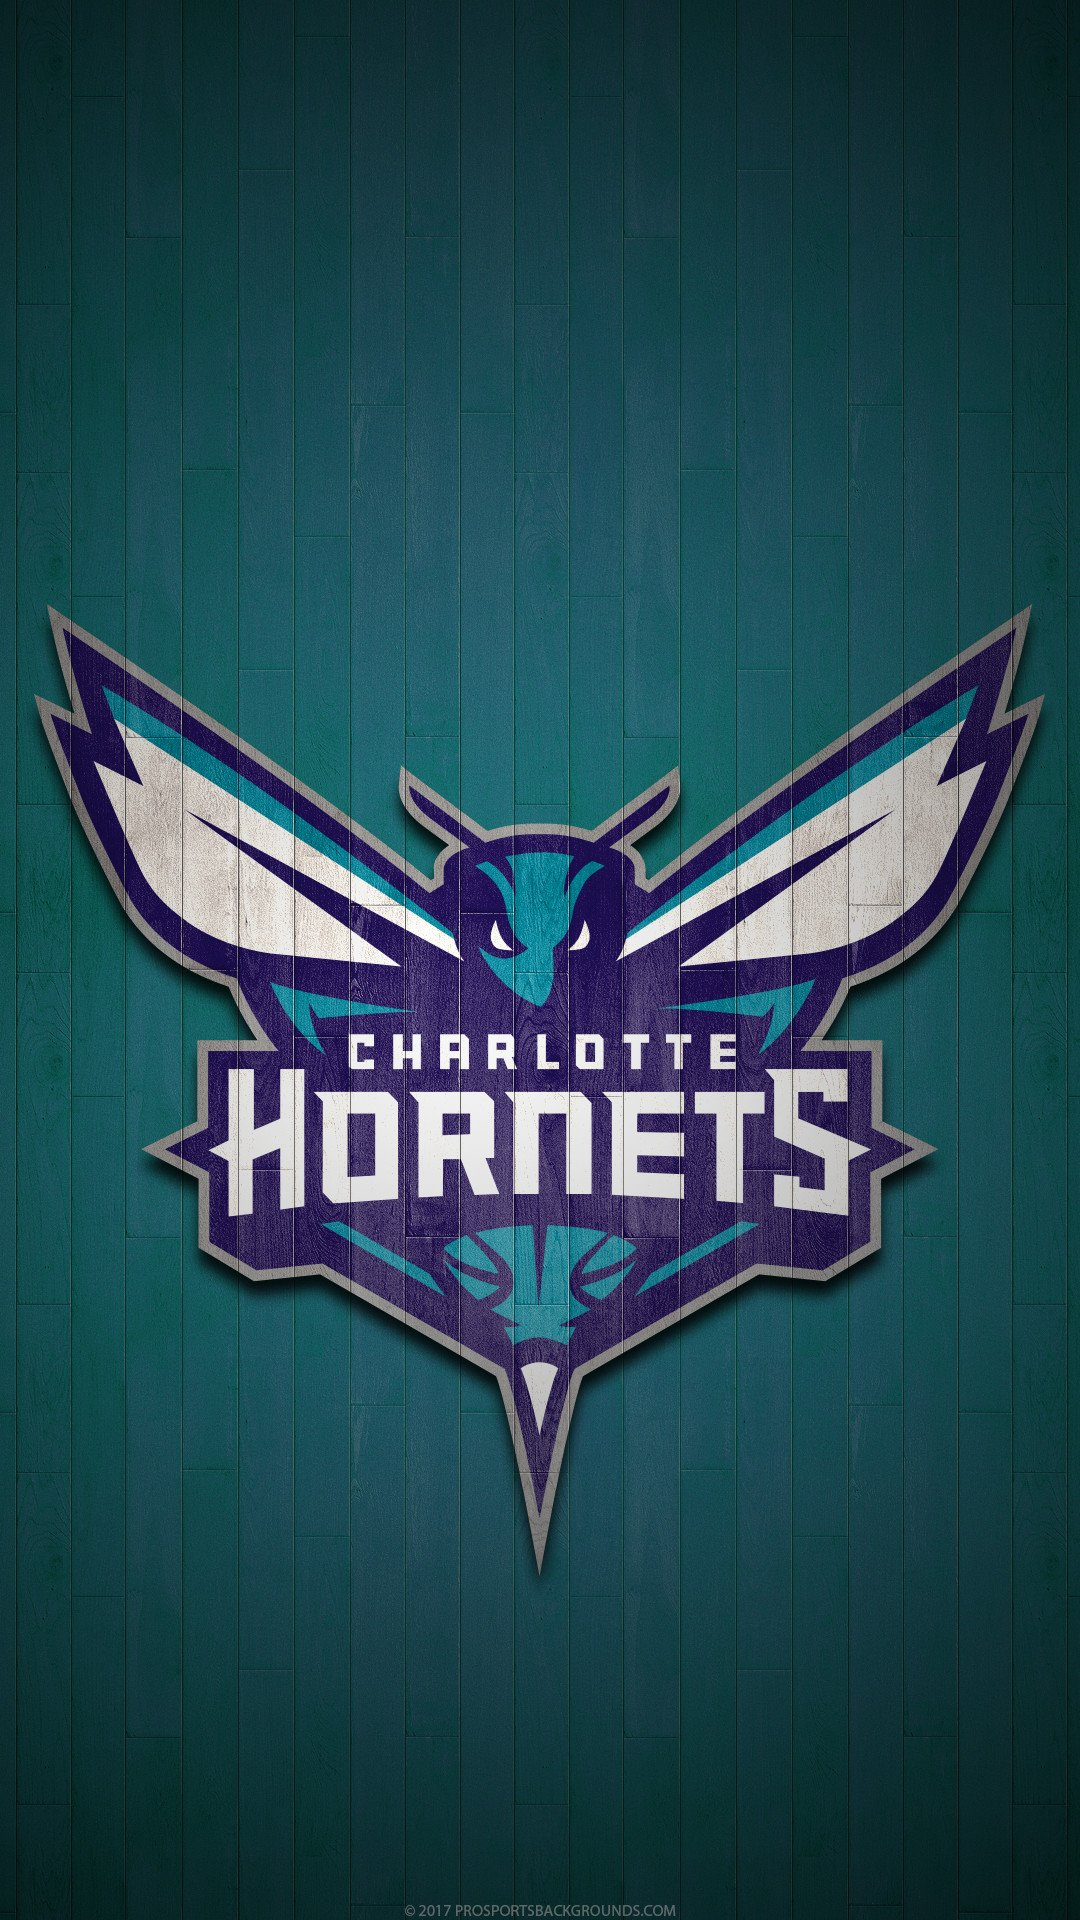 Charlotte Hornets Wallpapers 76 images 1080x1920